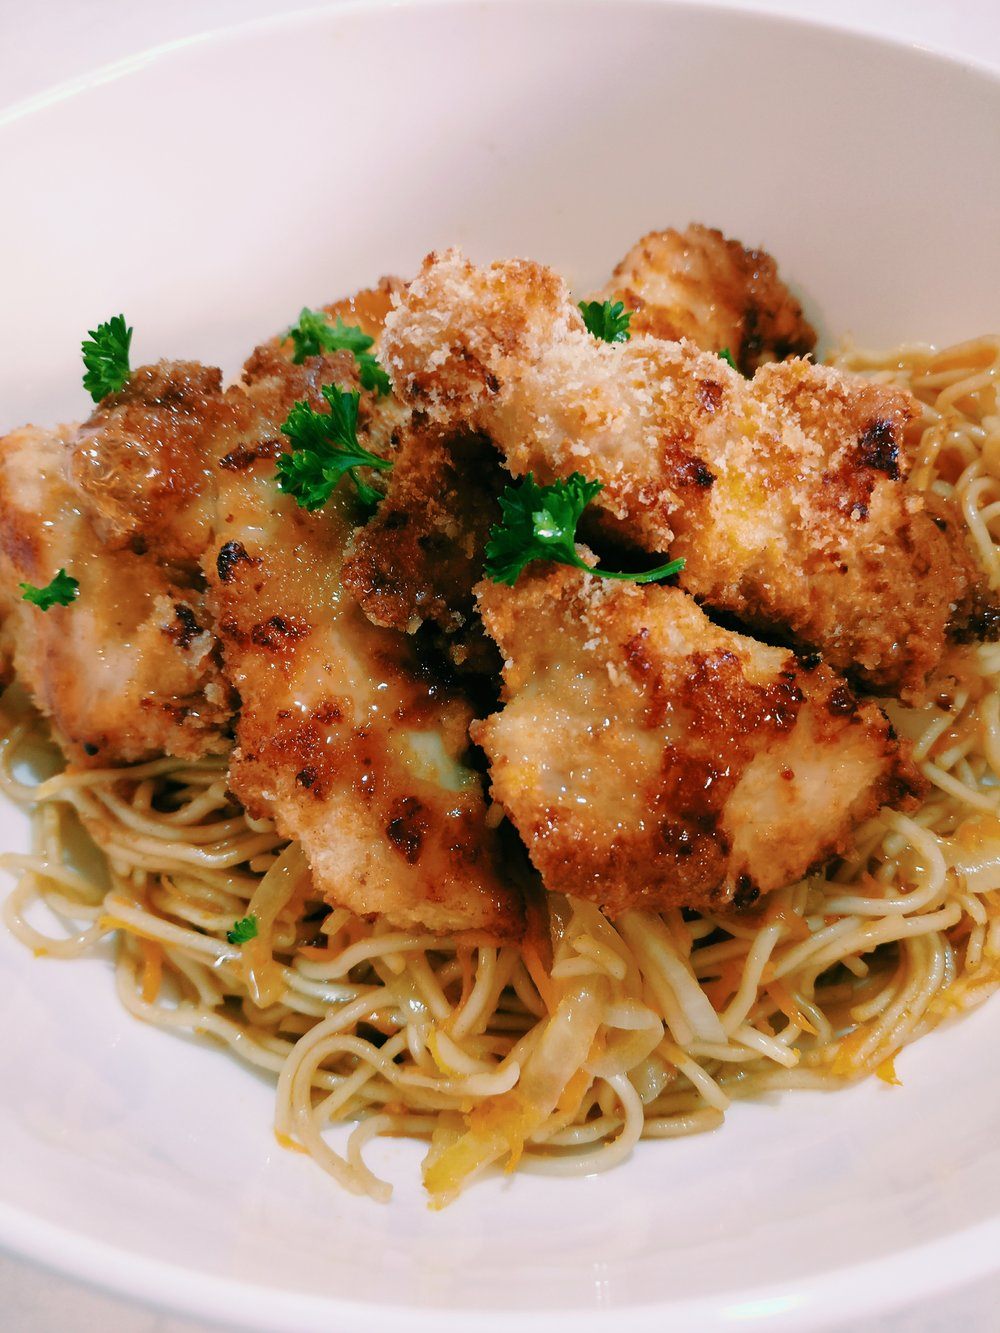 Crumbed Chicken & Noodles